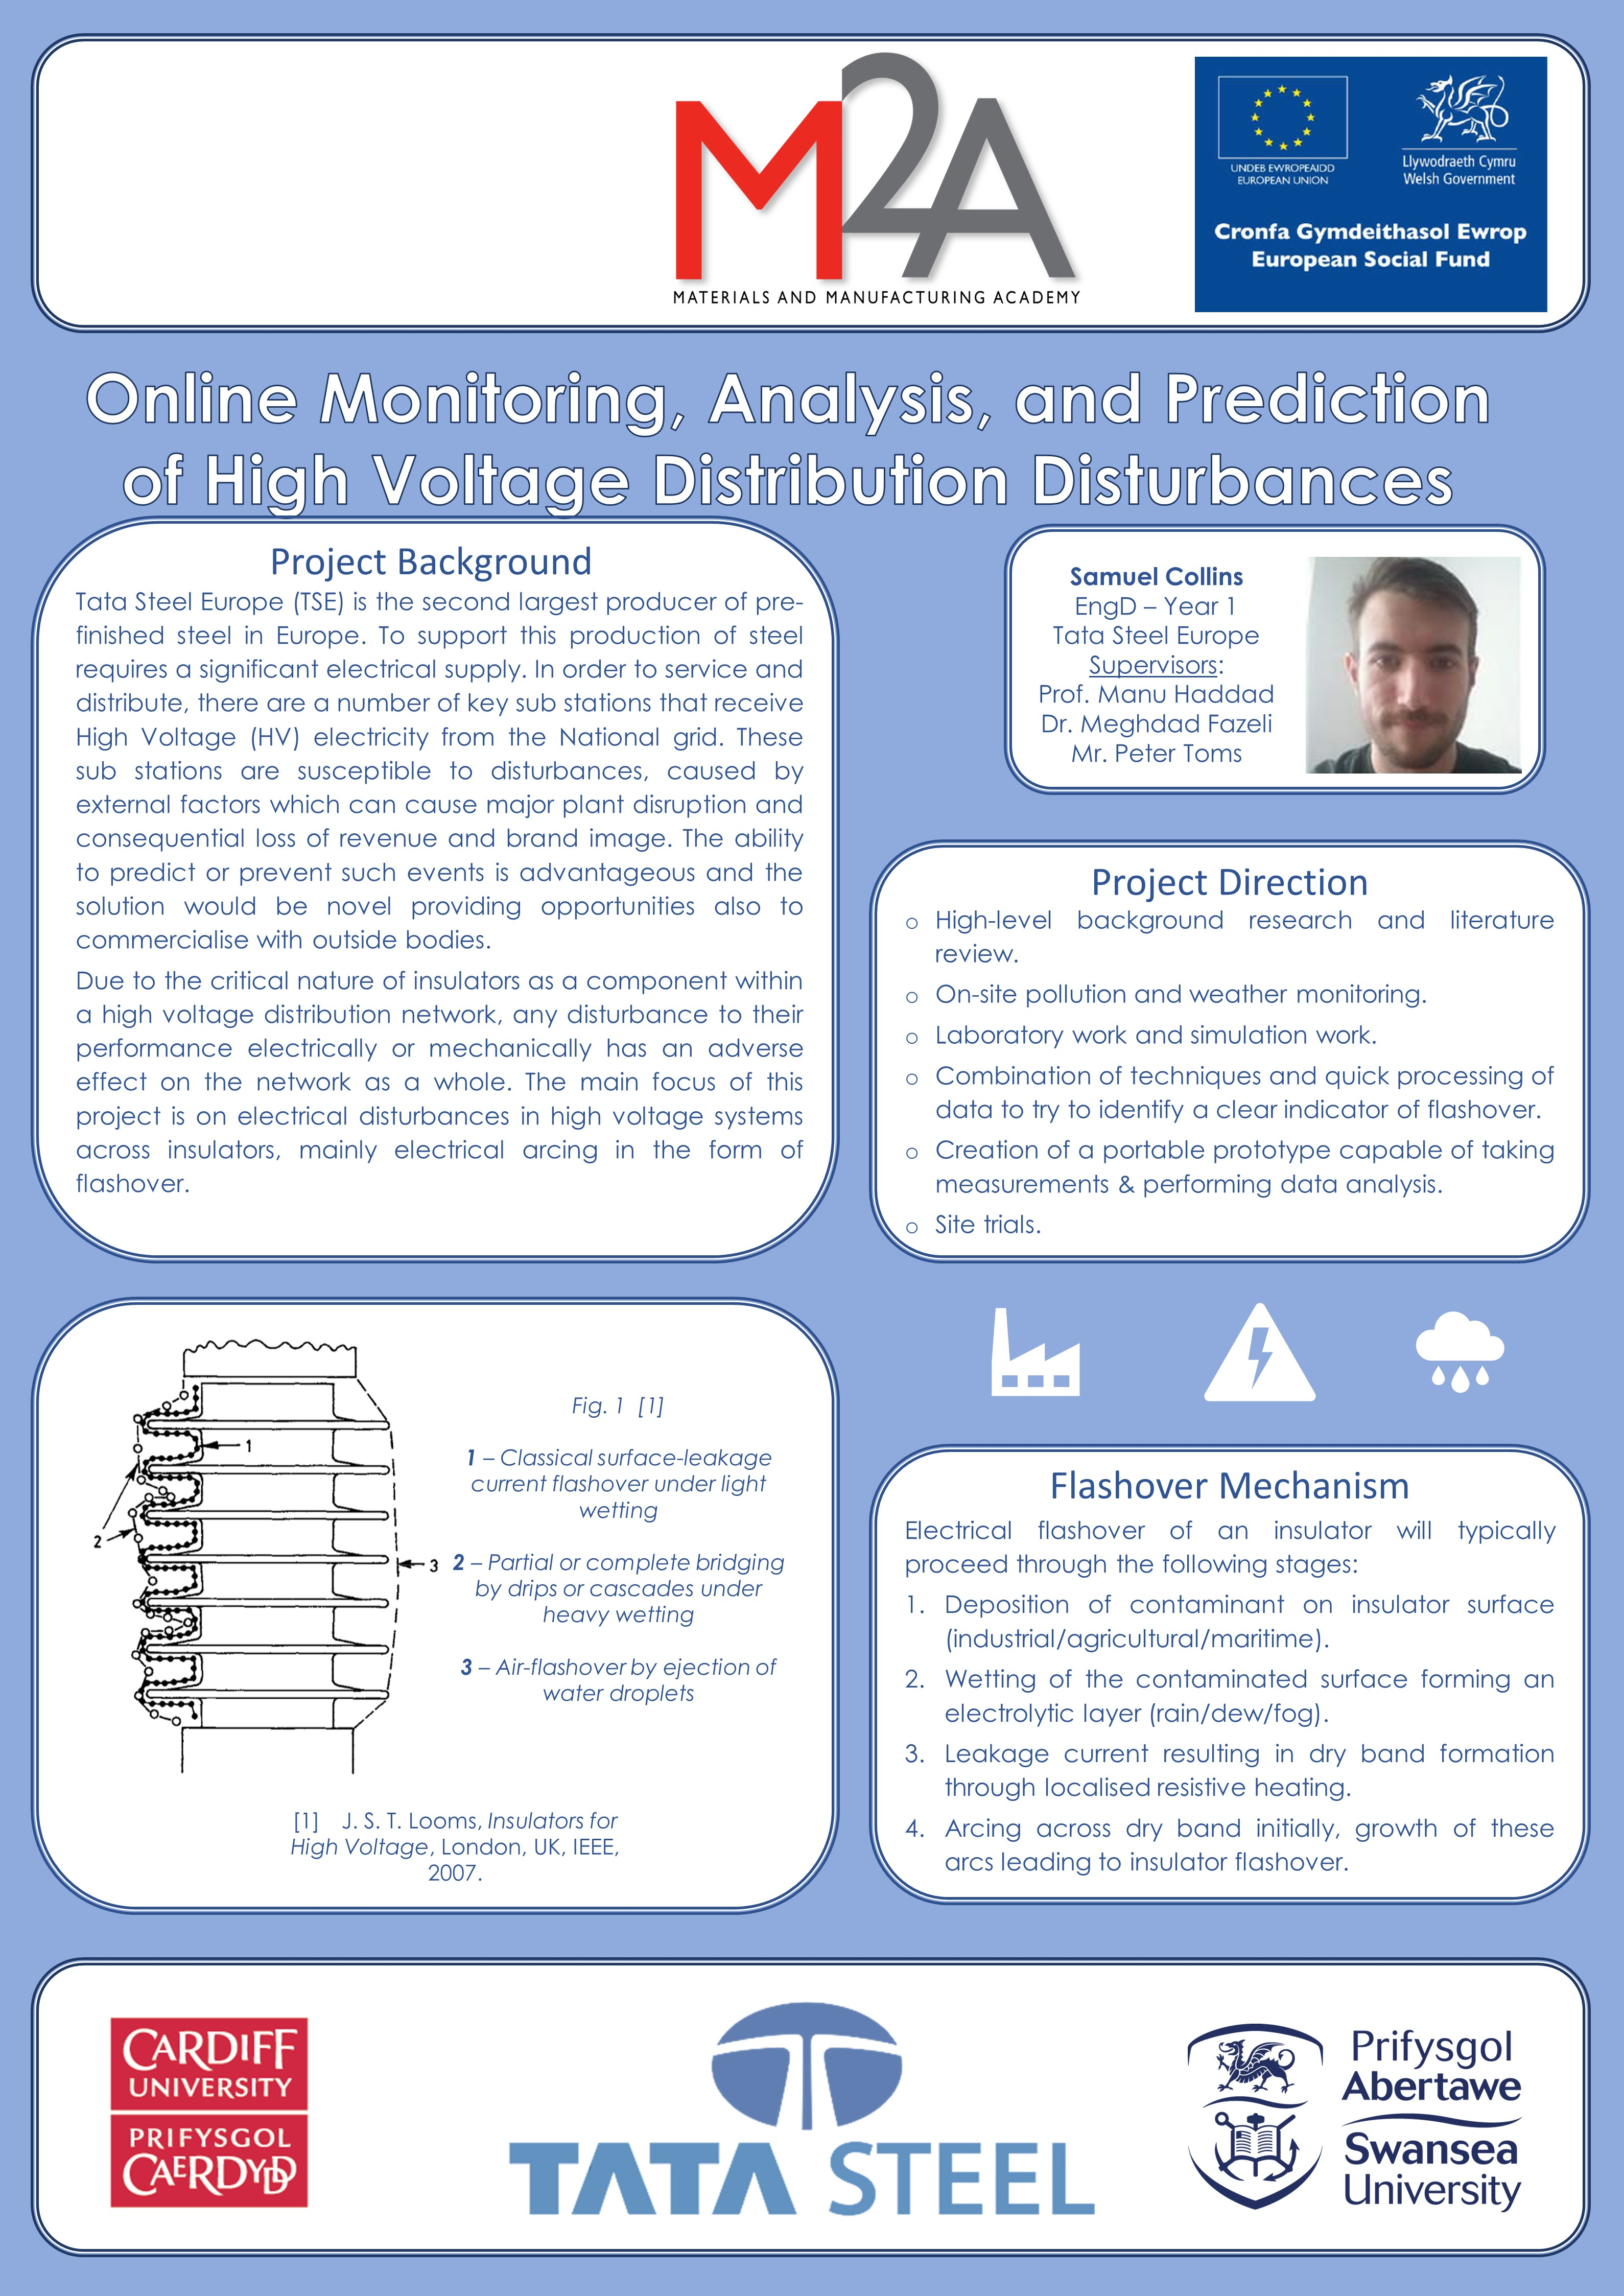 Online Monitoring, Analysis, and Prediction of High Voltage Distribution Disturbances